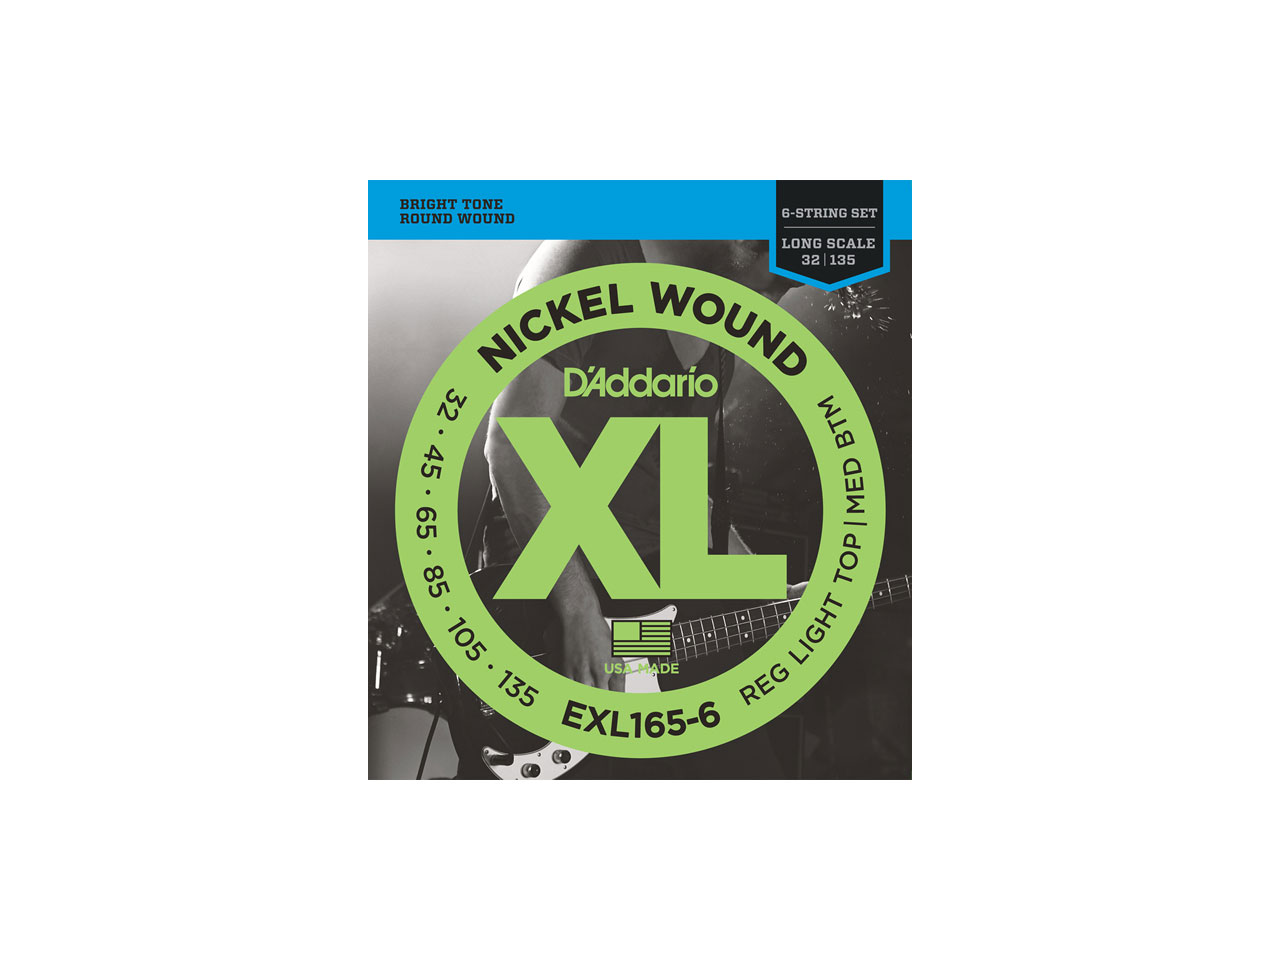 D'Addario(ダダリオ) XL Nickel Round Wound , 6-String/Long Scale , Regular Light Top/Medium Bottom / EXL165-6 (エレキベース弦/6弦用)